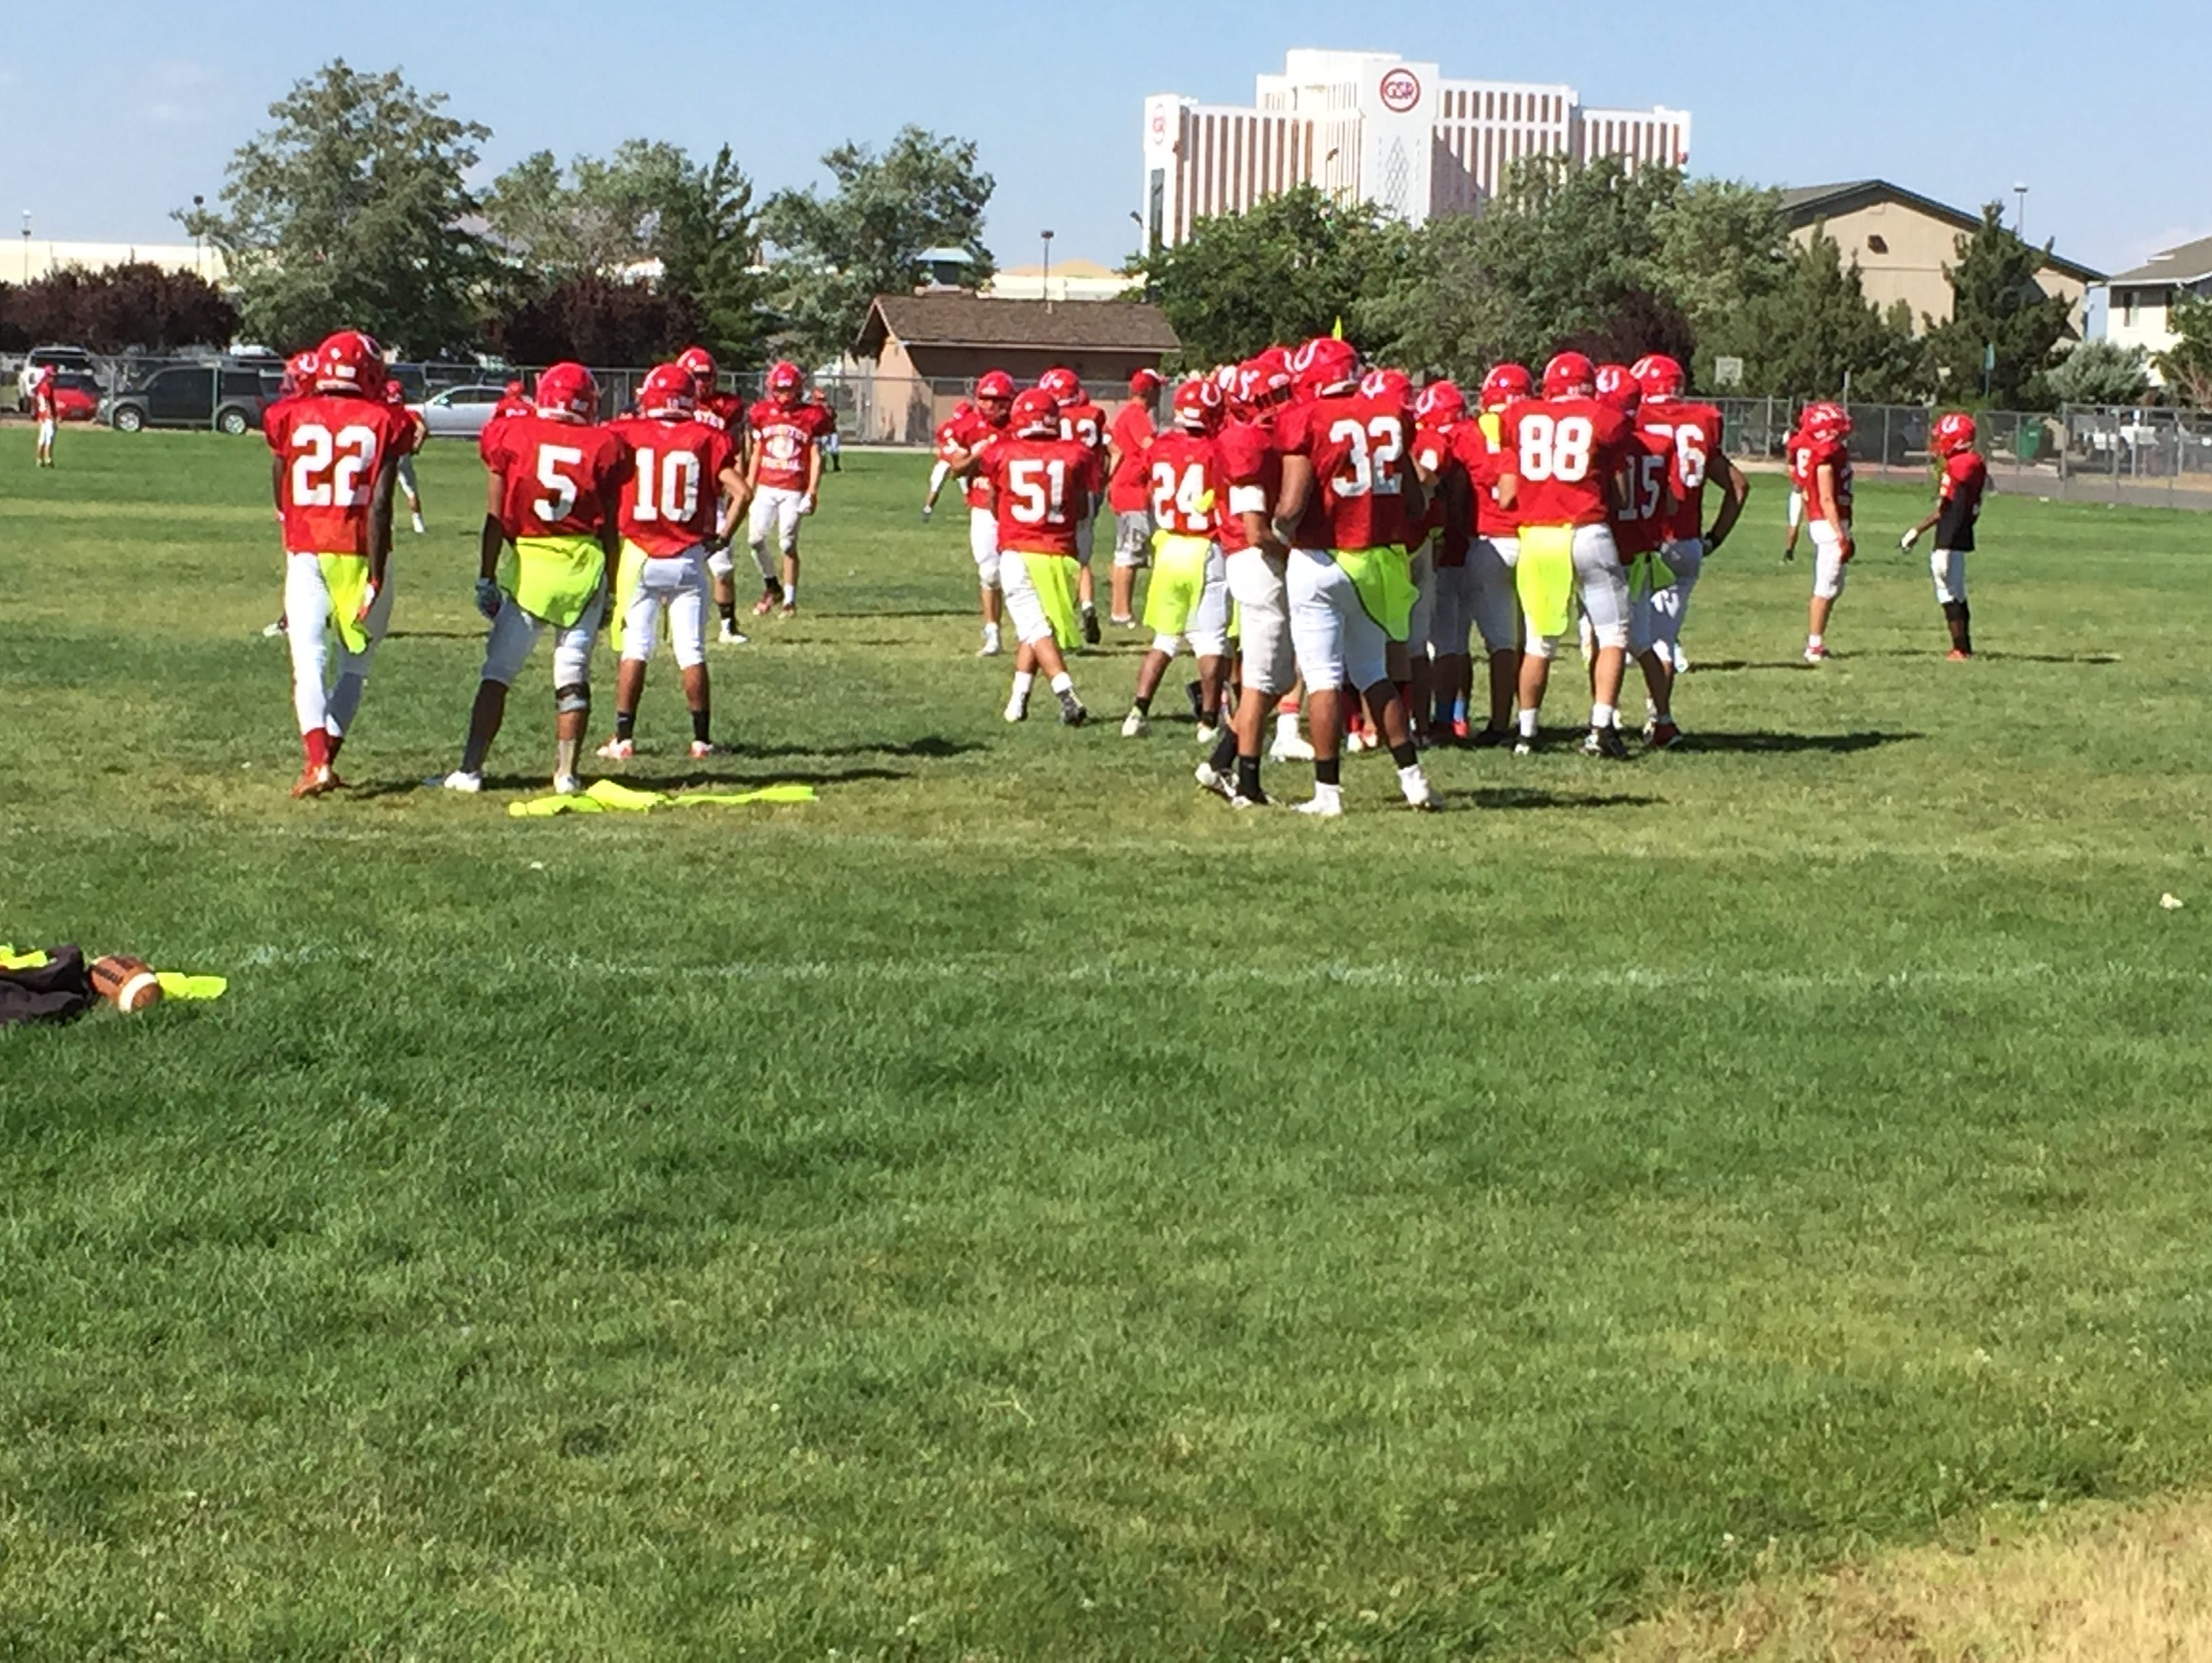 The Wooster football team practices at the school Wednesday.